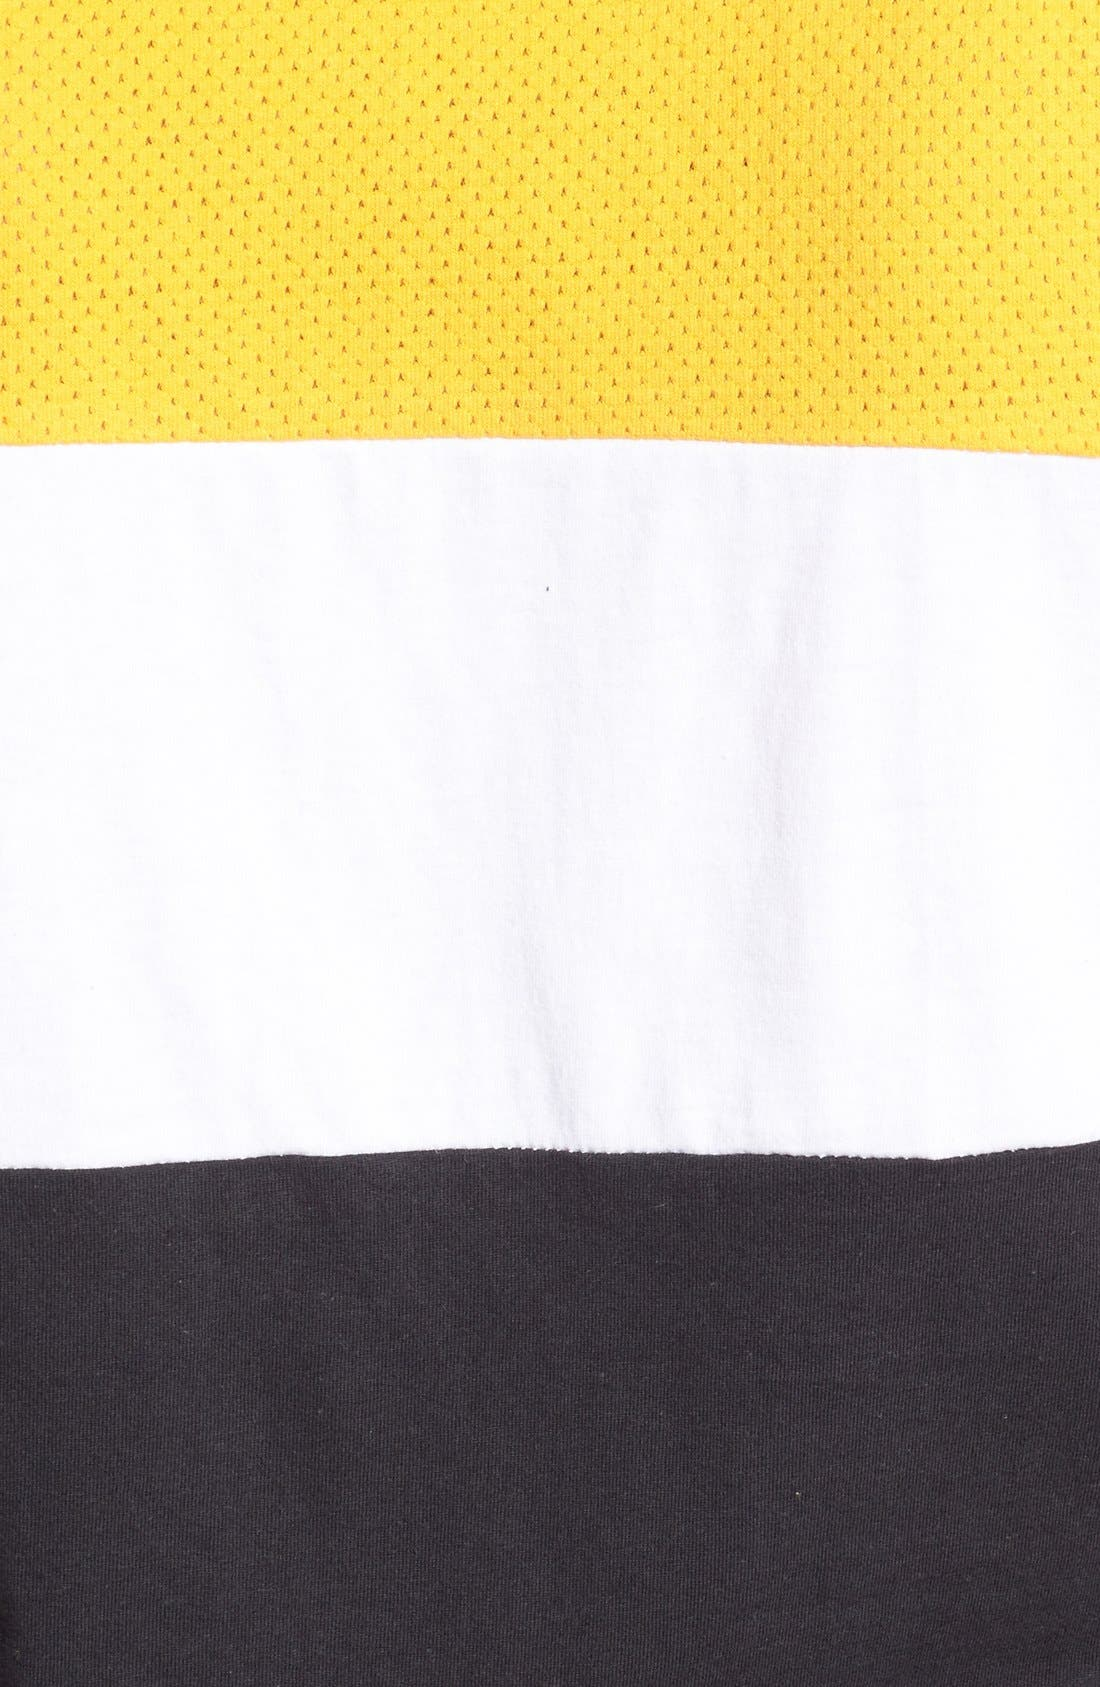 'Boston Bruins - Home Stand' Tank Top,                             Alternate thumbnail 2, color,                             001